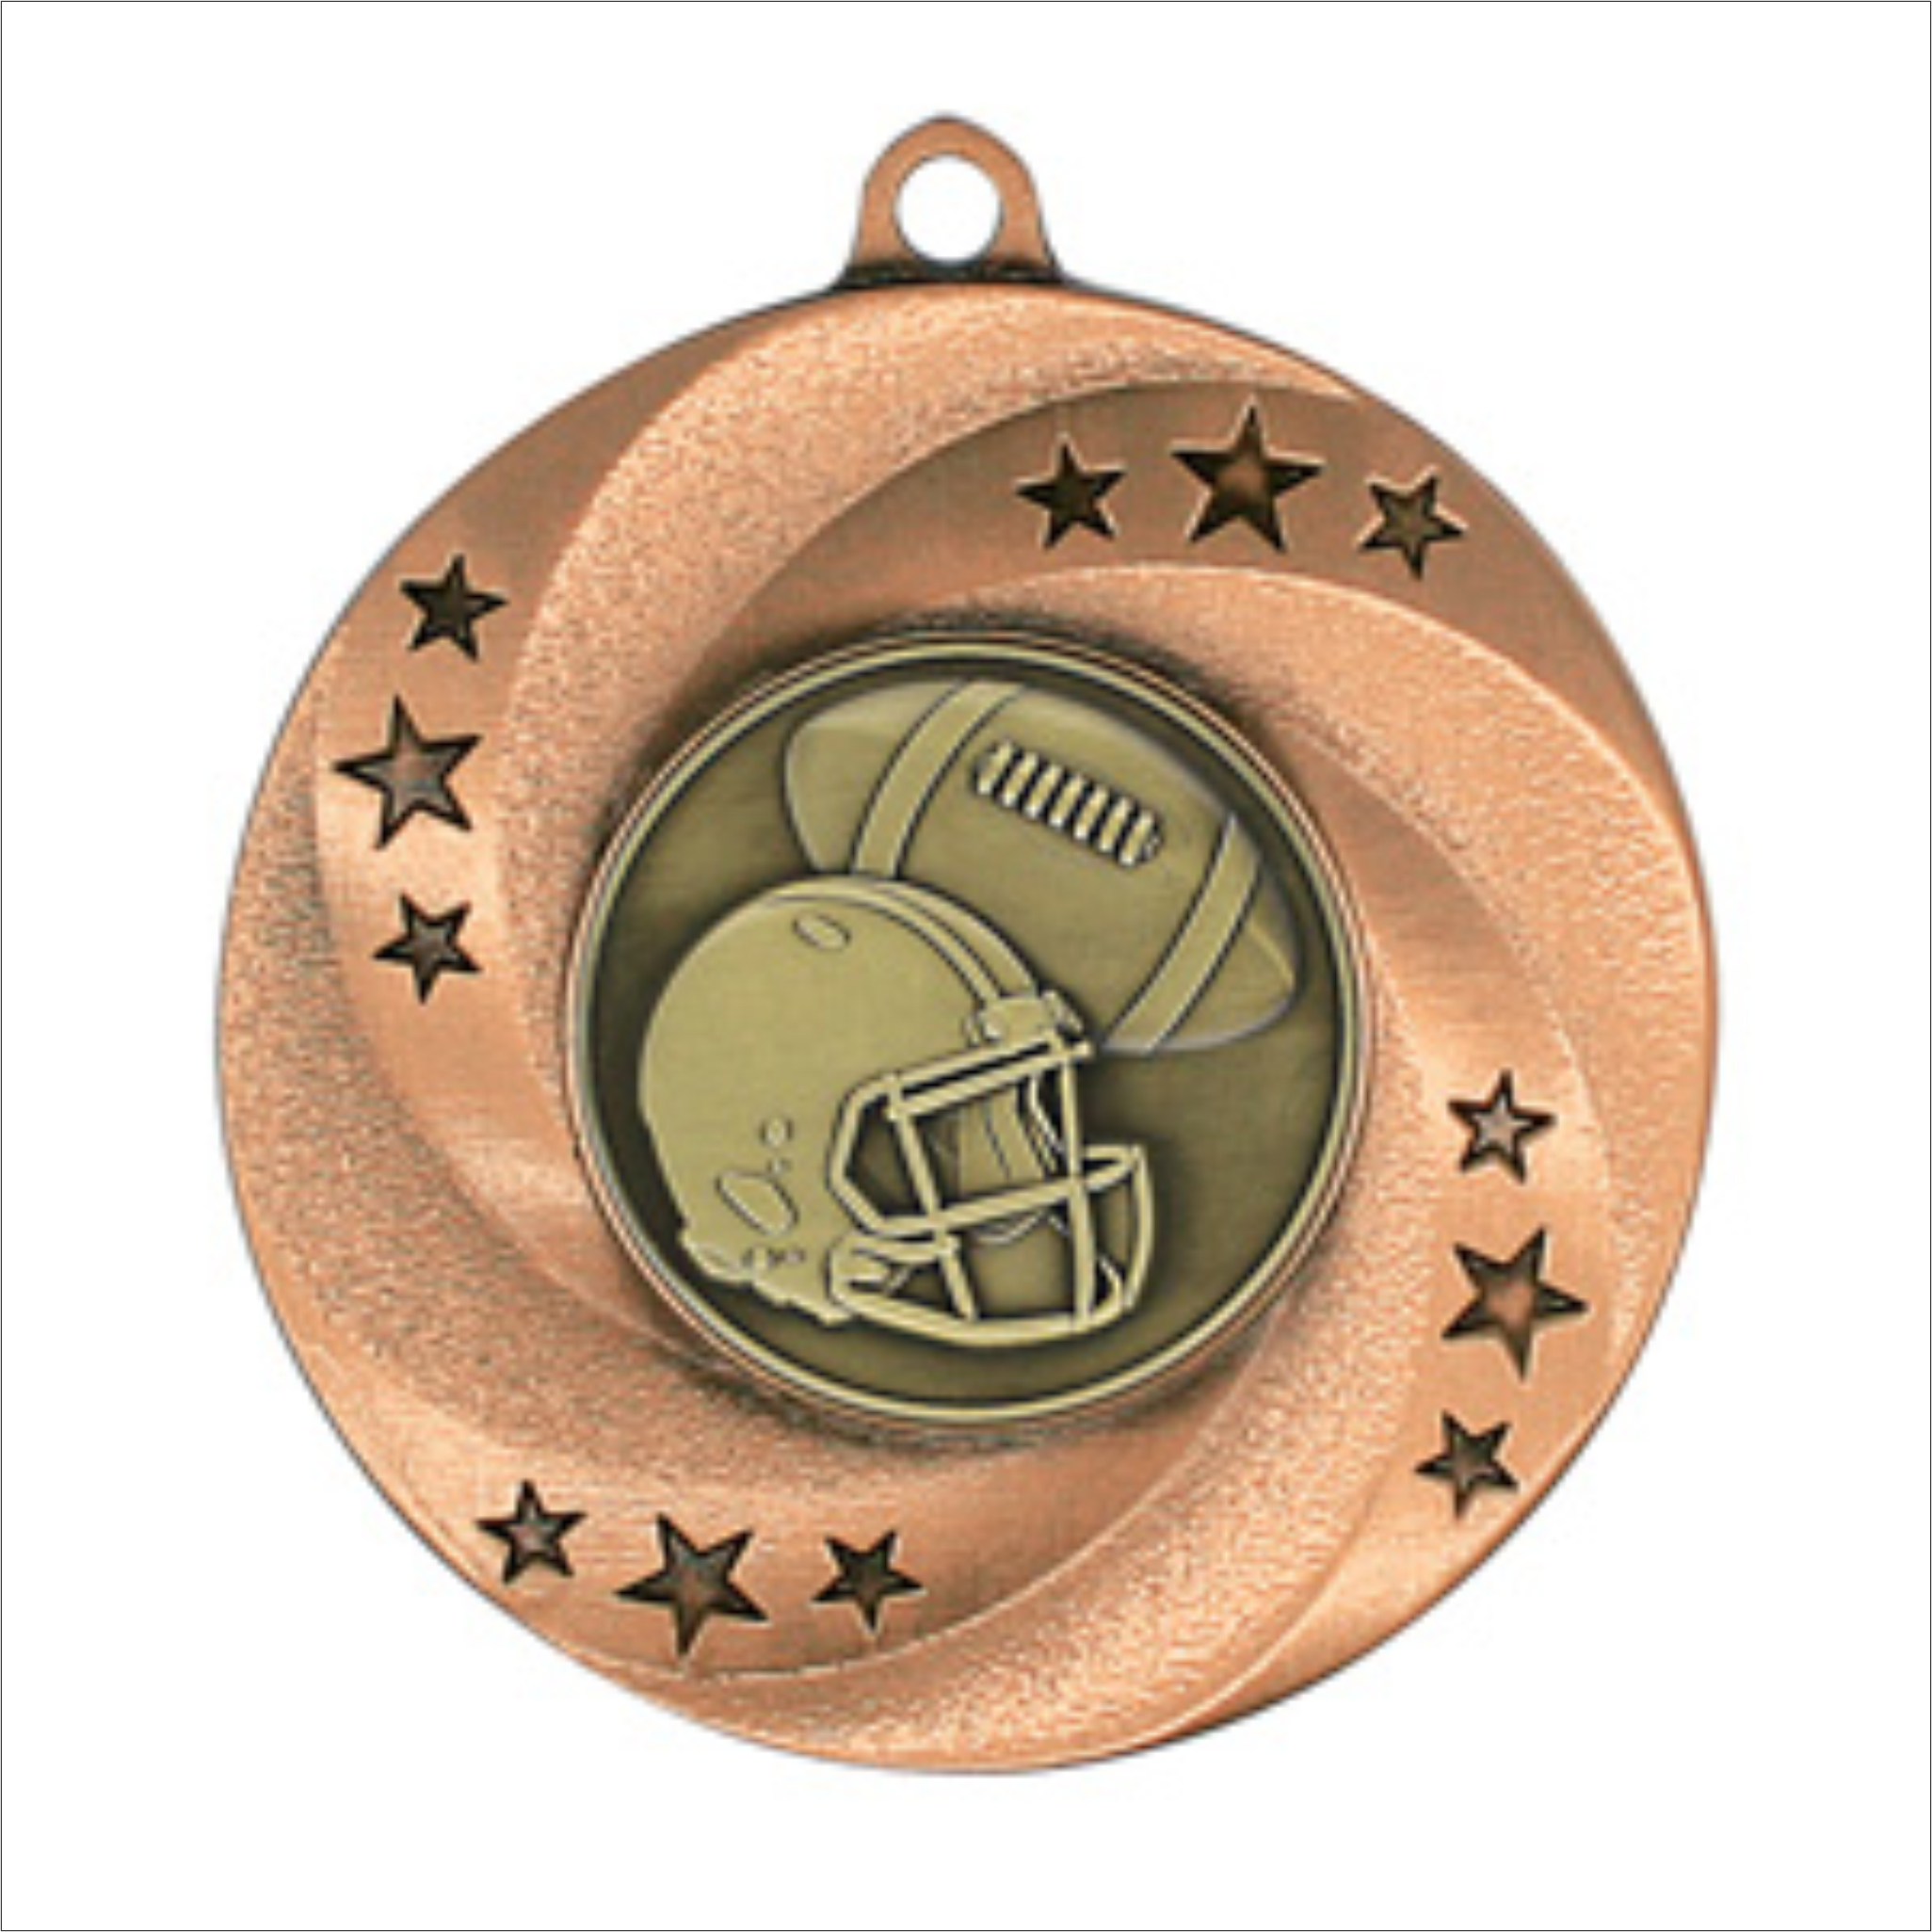 Football medallion - Matrix series